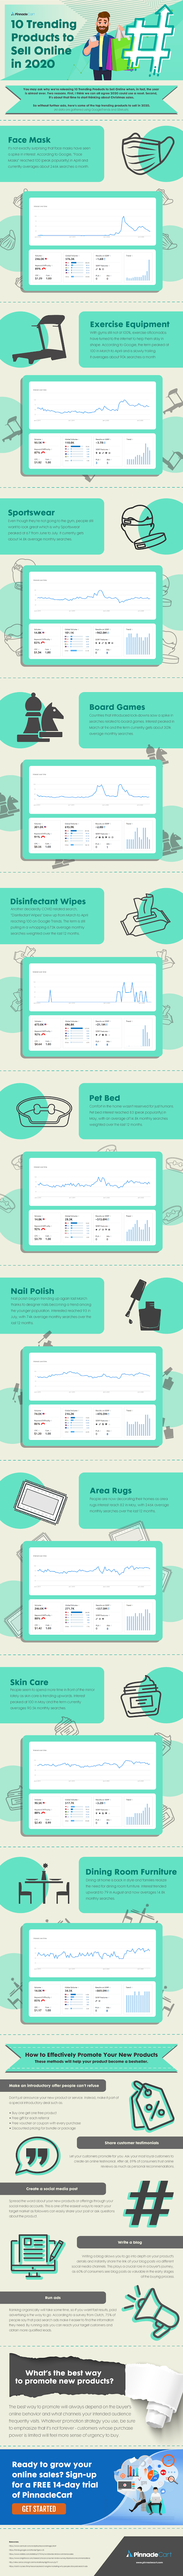 10 Trending Products to Sell Online in 2020 #infographic #Sell #Online Sell #Business